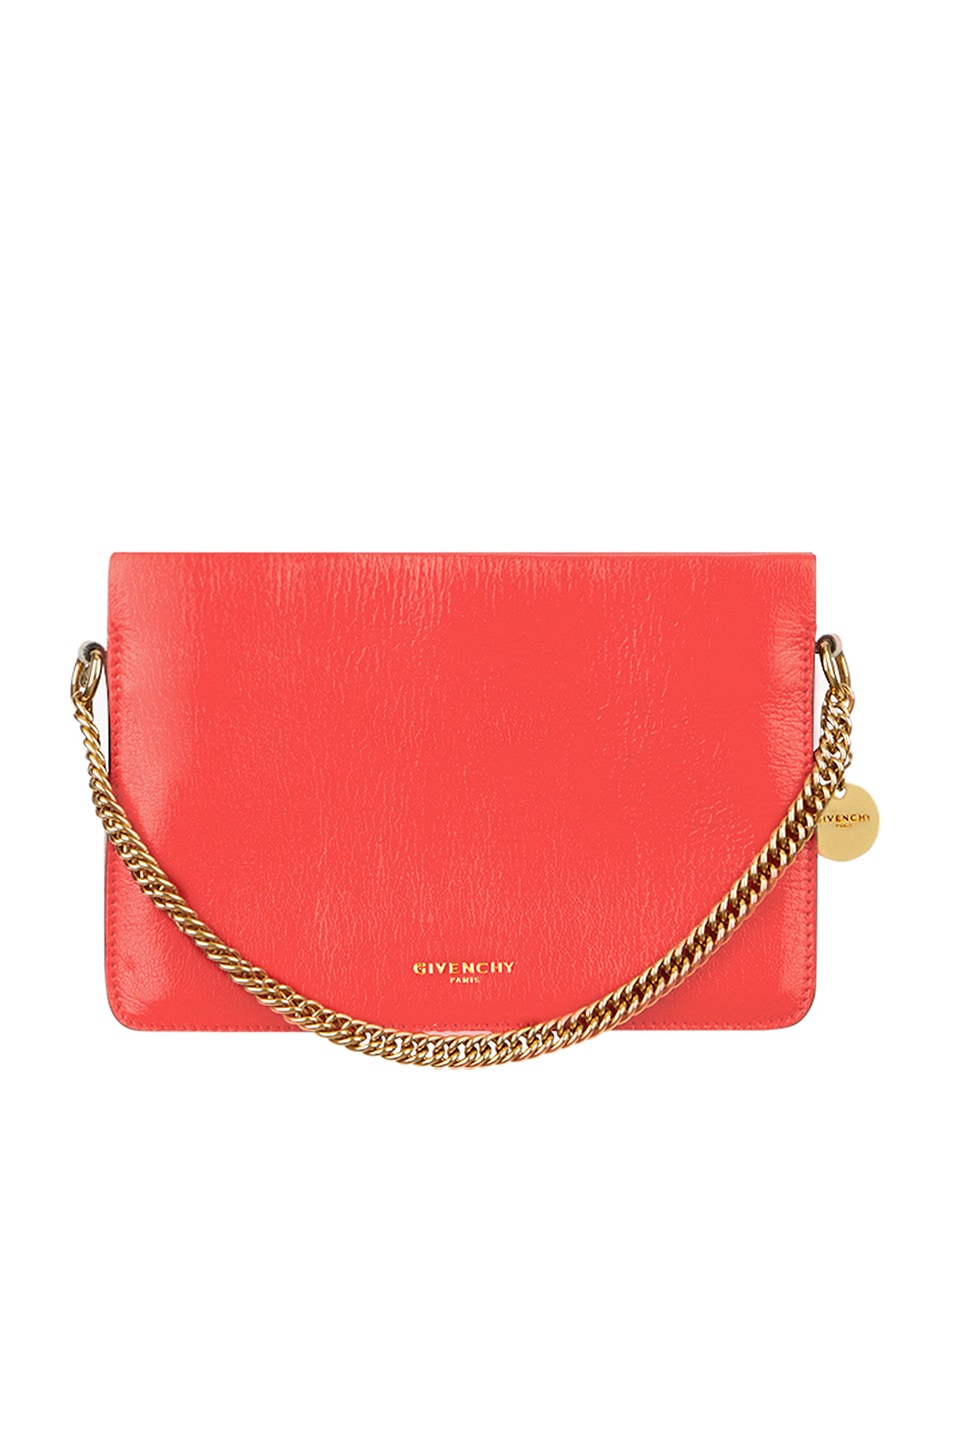 Image 1 of Givenchy Leather Crossbody Bag in Poppy Red & Sand